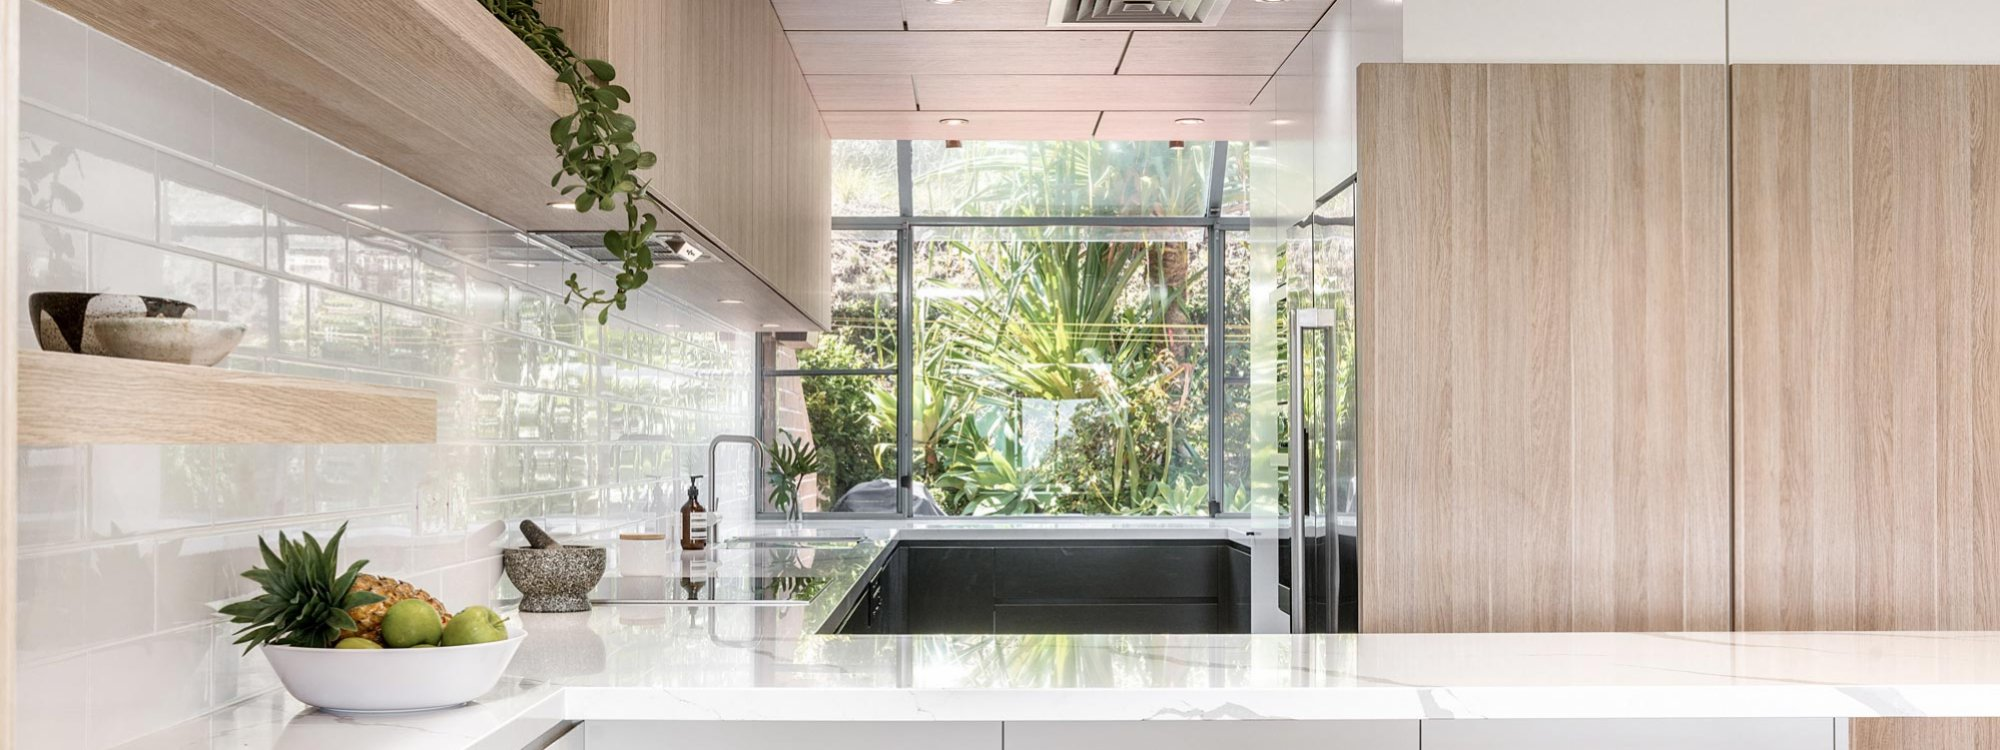 11 James Cook - Byron Bay - Kitchen and Bar